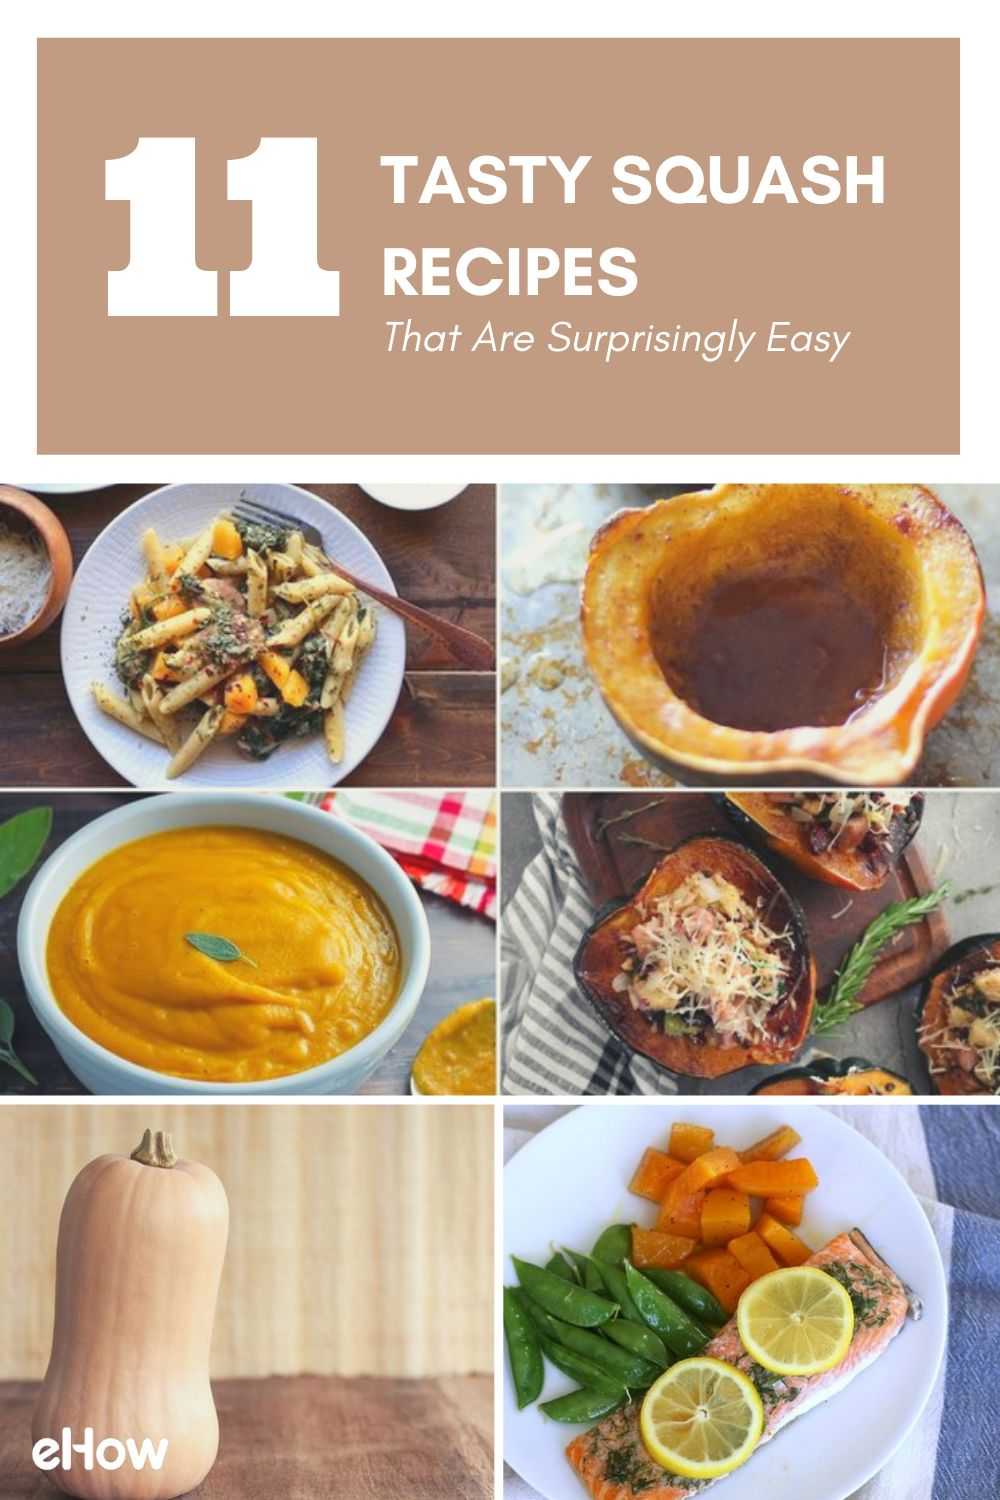 11 Tasty Squash Recipes That Are Surprisingly Easy